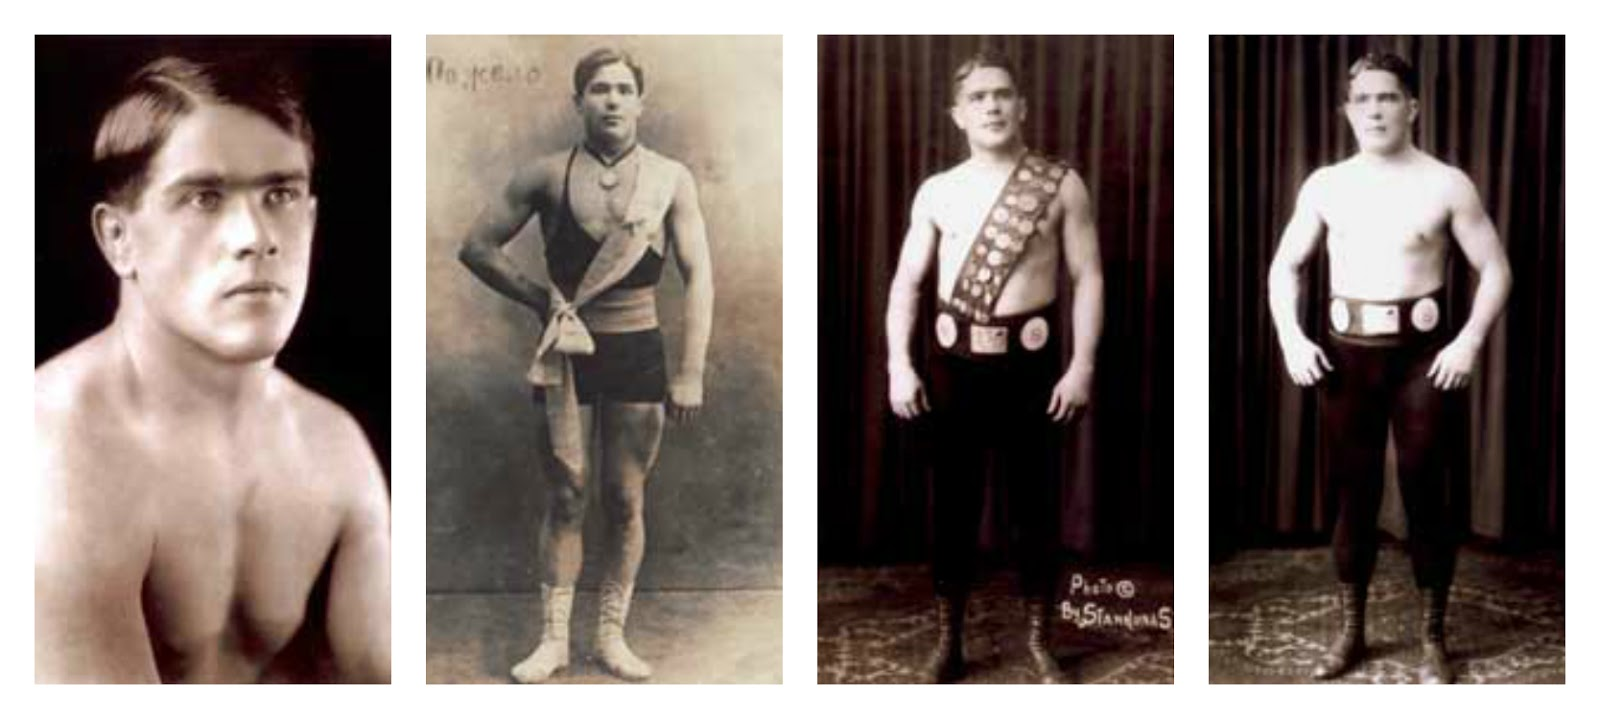 Maurice Tillet the French wrestler who was supposedly the